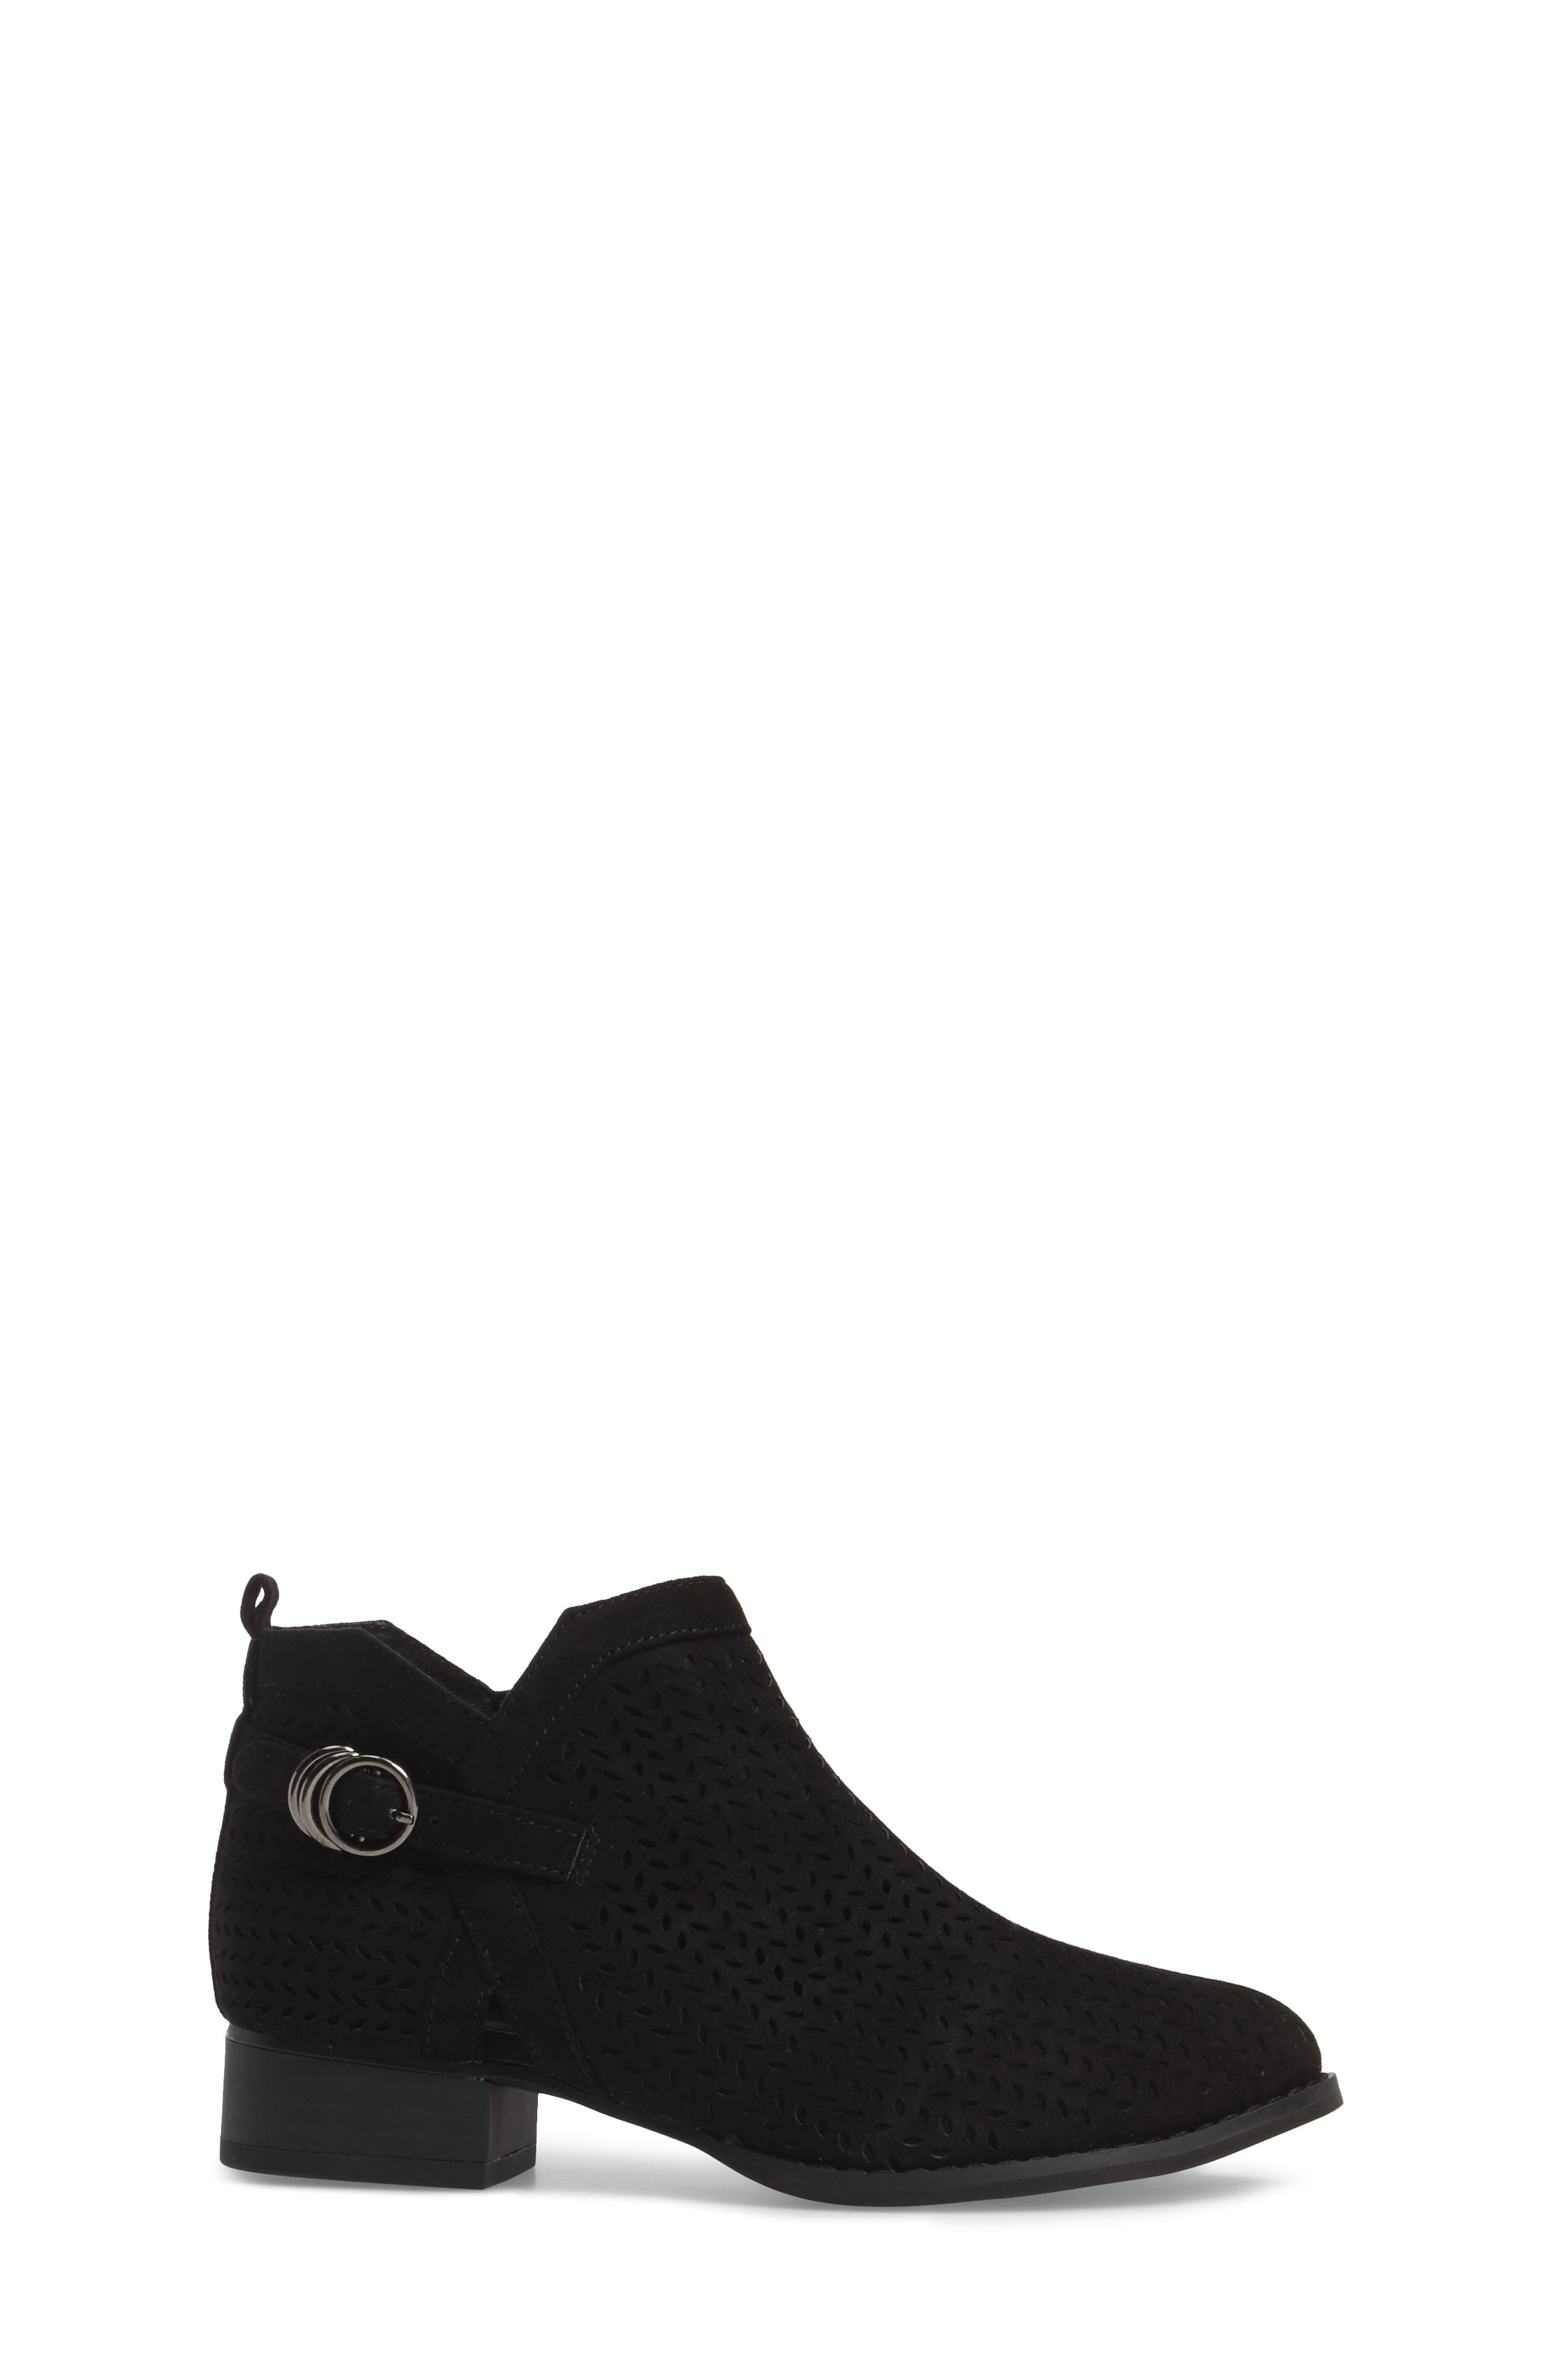 Campina Perforated Bootie,                             Alternate thumbnail 3, color,                             BLACK SUEDE